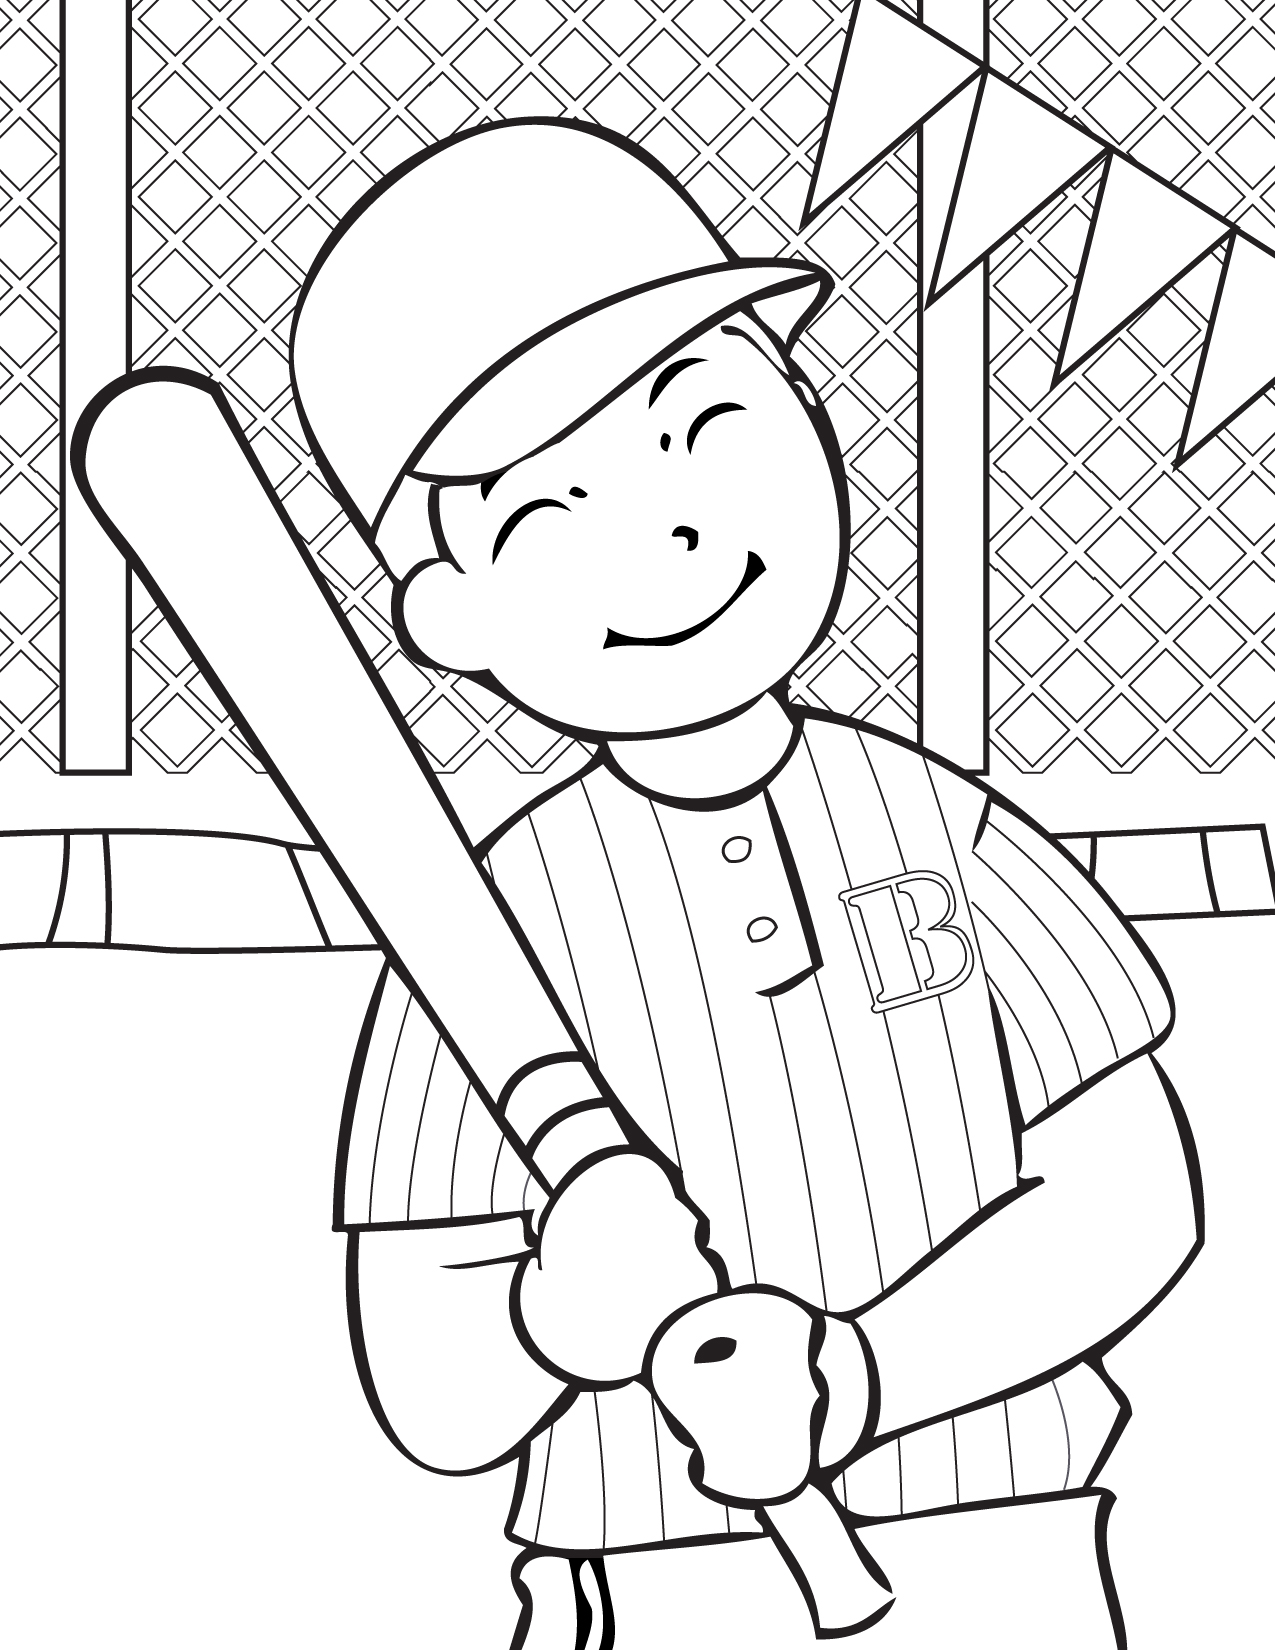 smiling Baseball player